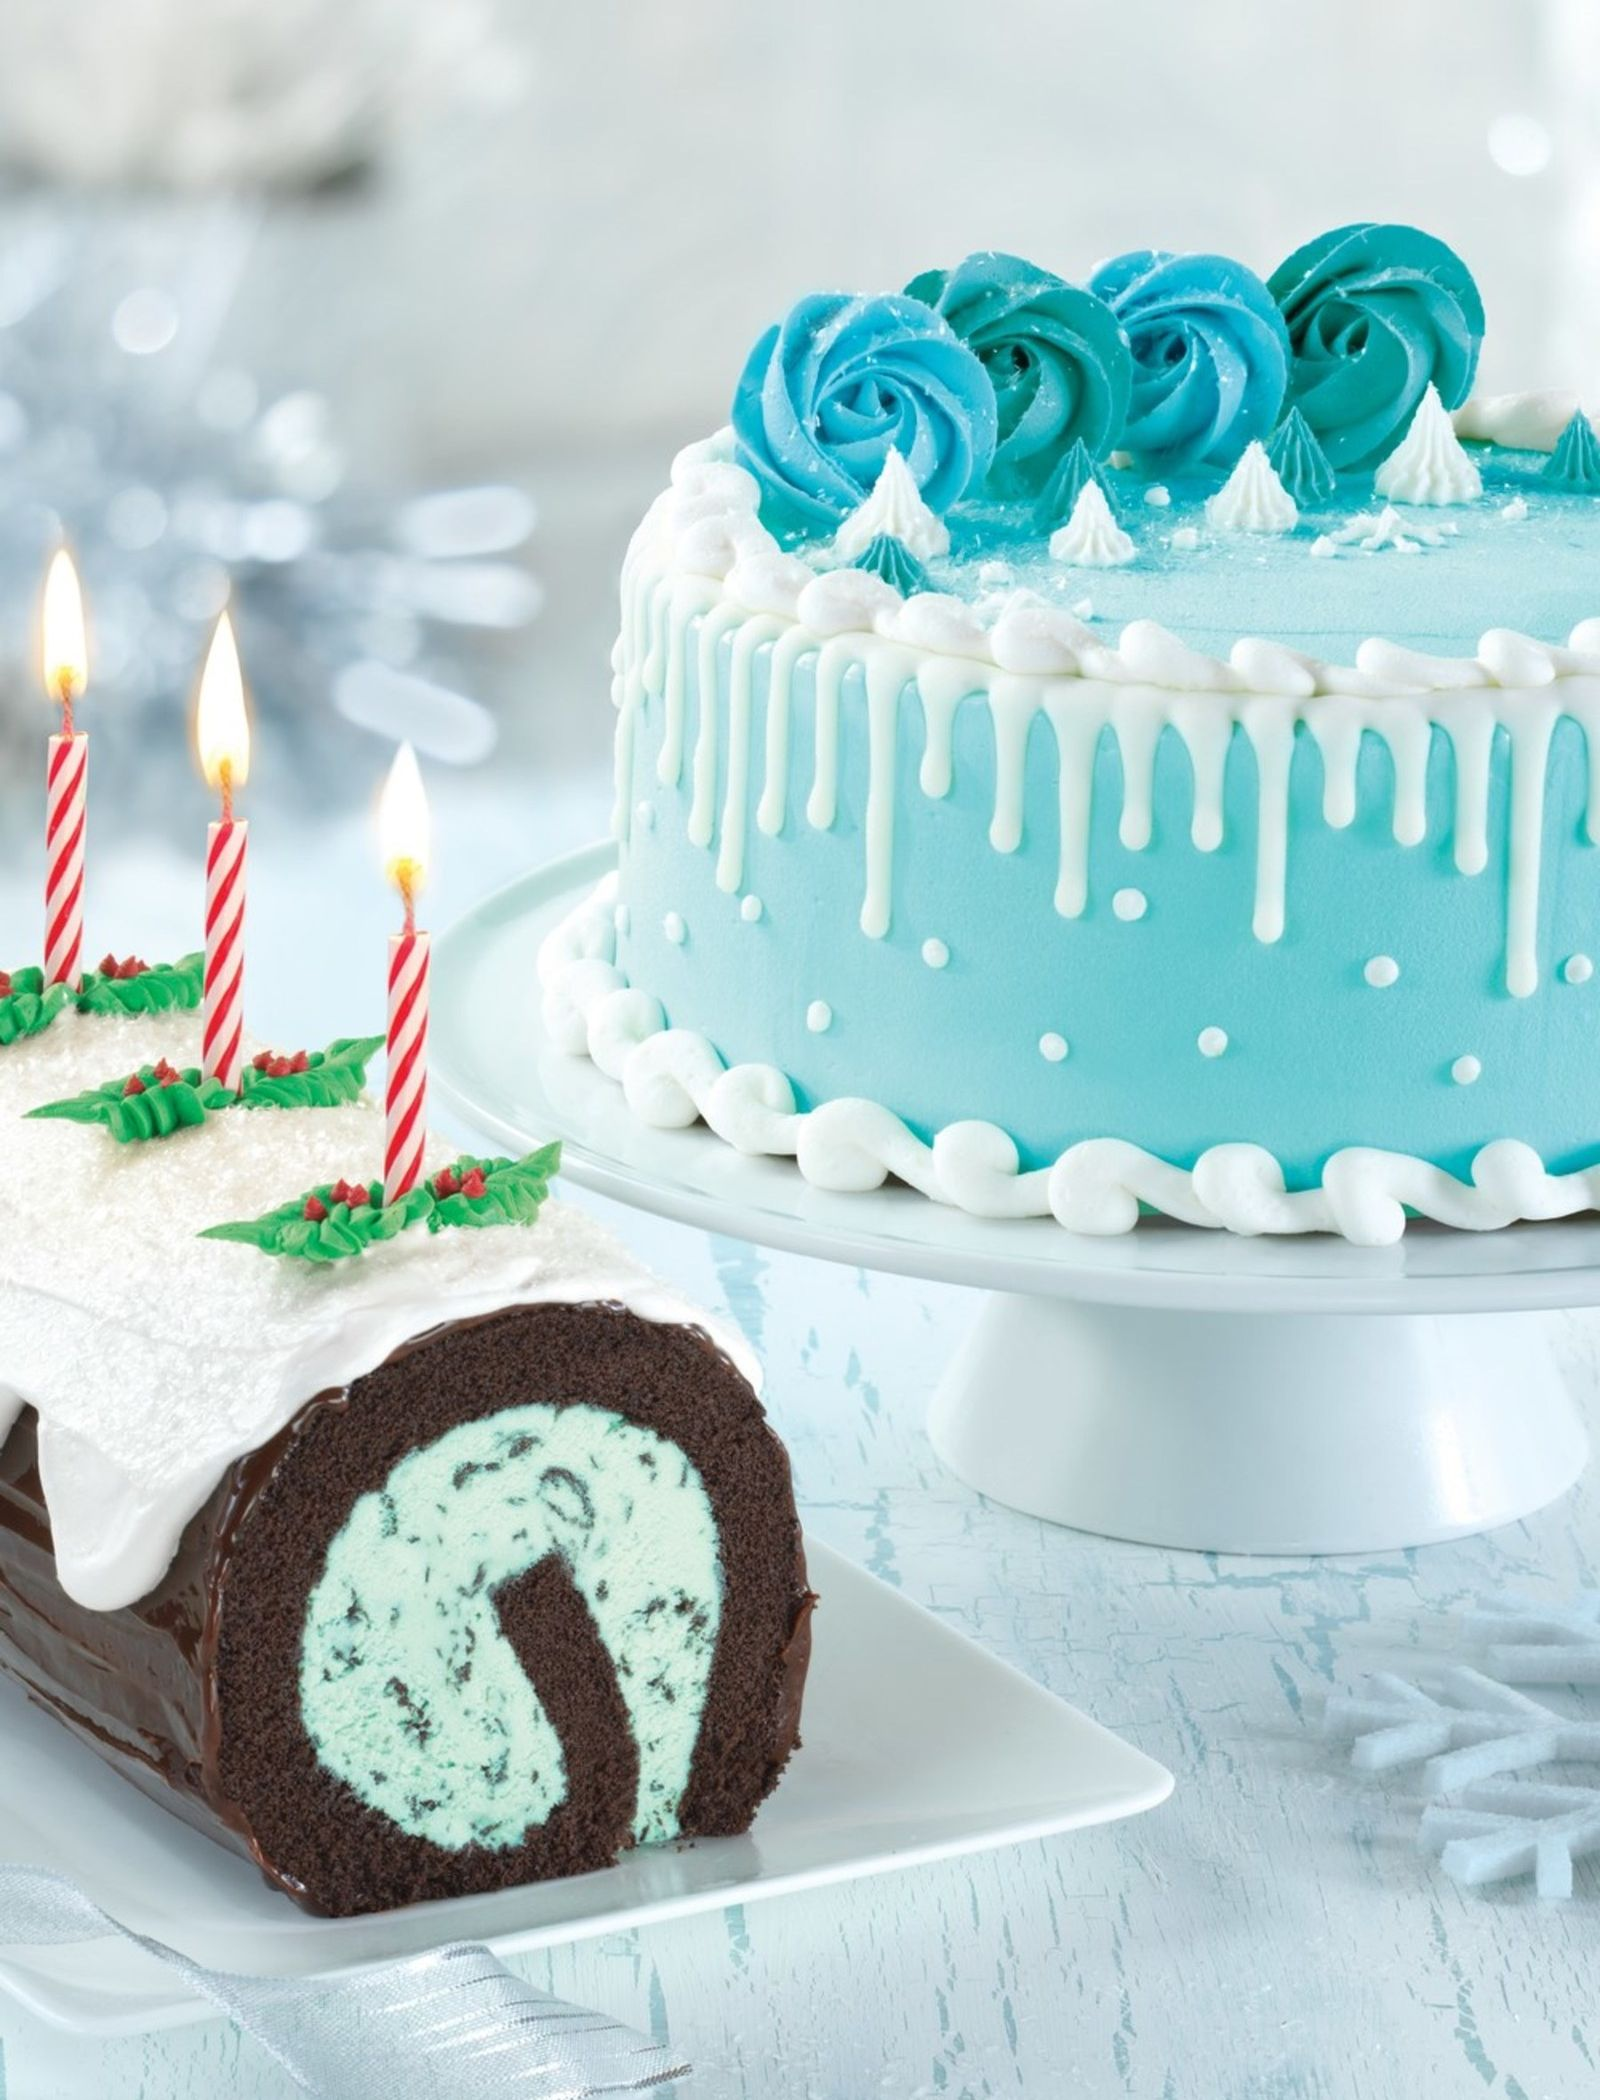 Baskin-Robbins Celebrates the Spirit of the Holiday Season with Festive Winter Wonderland Cake and YORK Peppermint Pattie Flavor of the Month